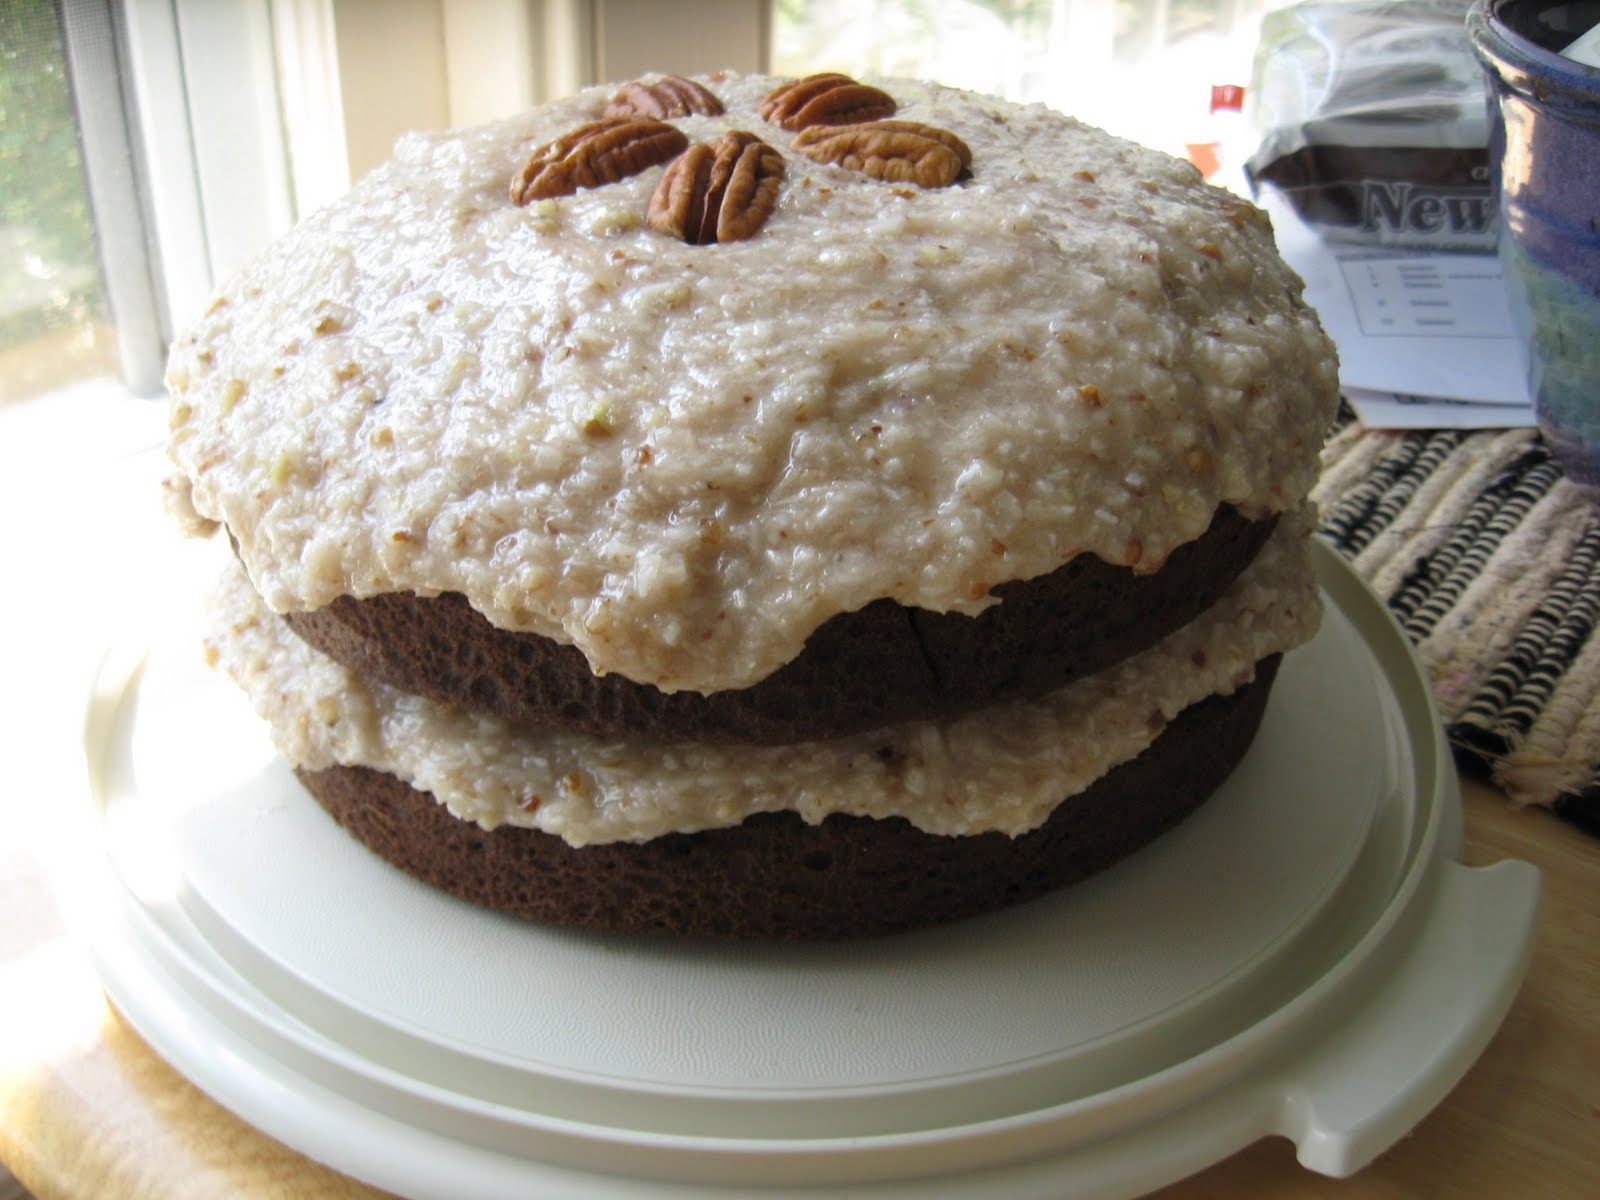 ... Gingerlemongirl.com: Gluten Free Vegan German Chocolate Cake Recipe